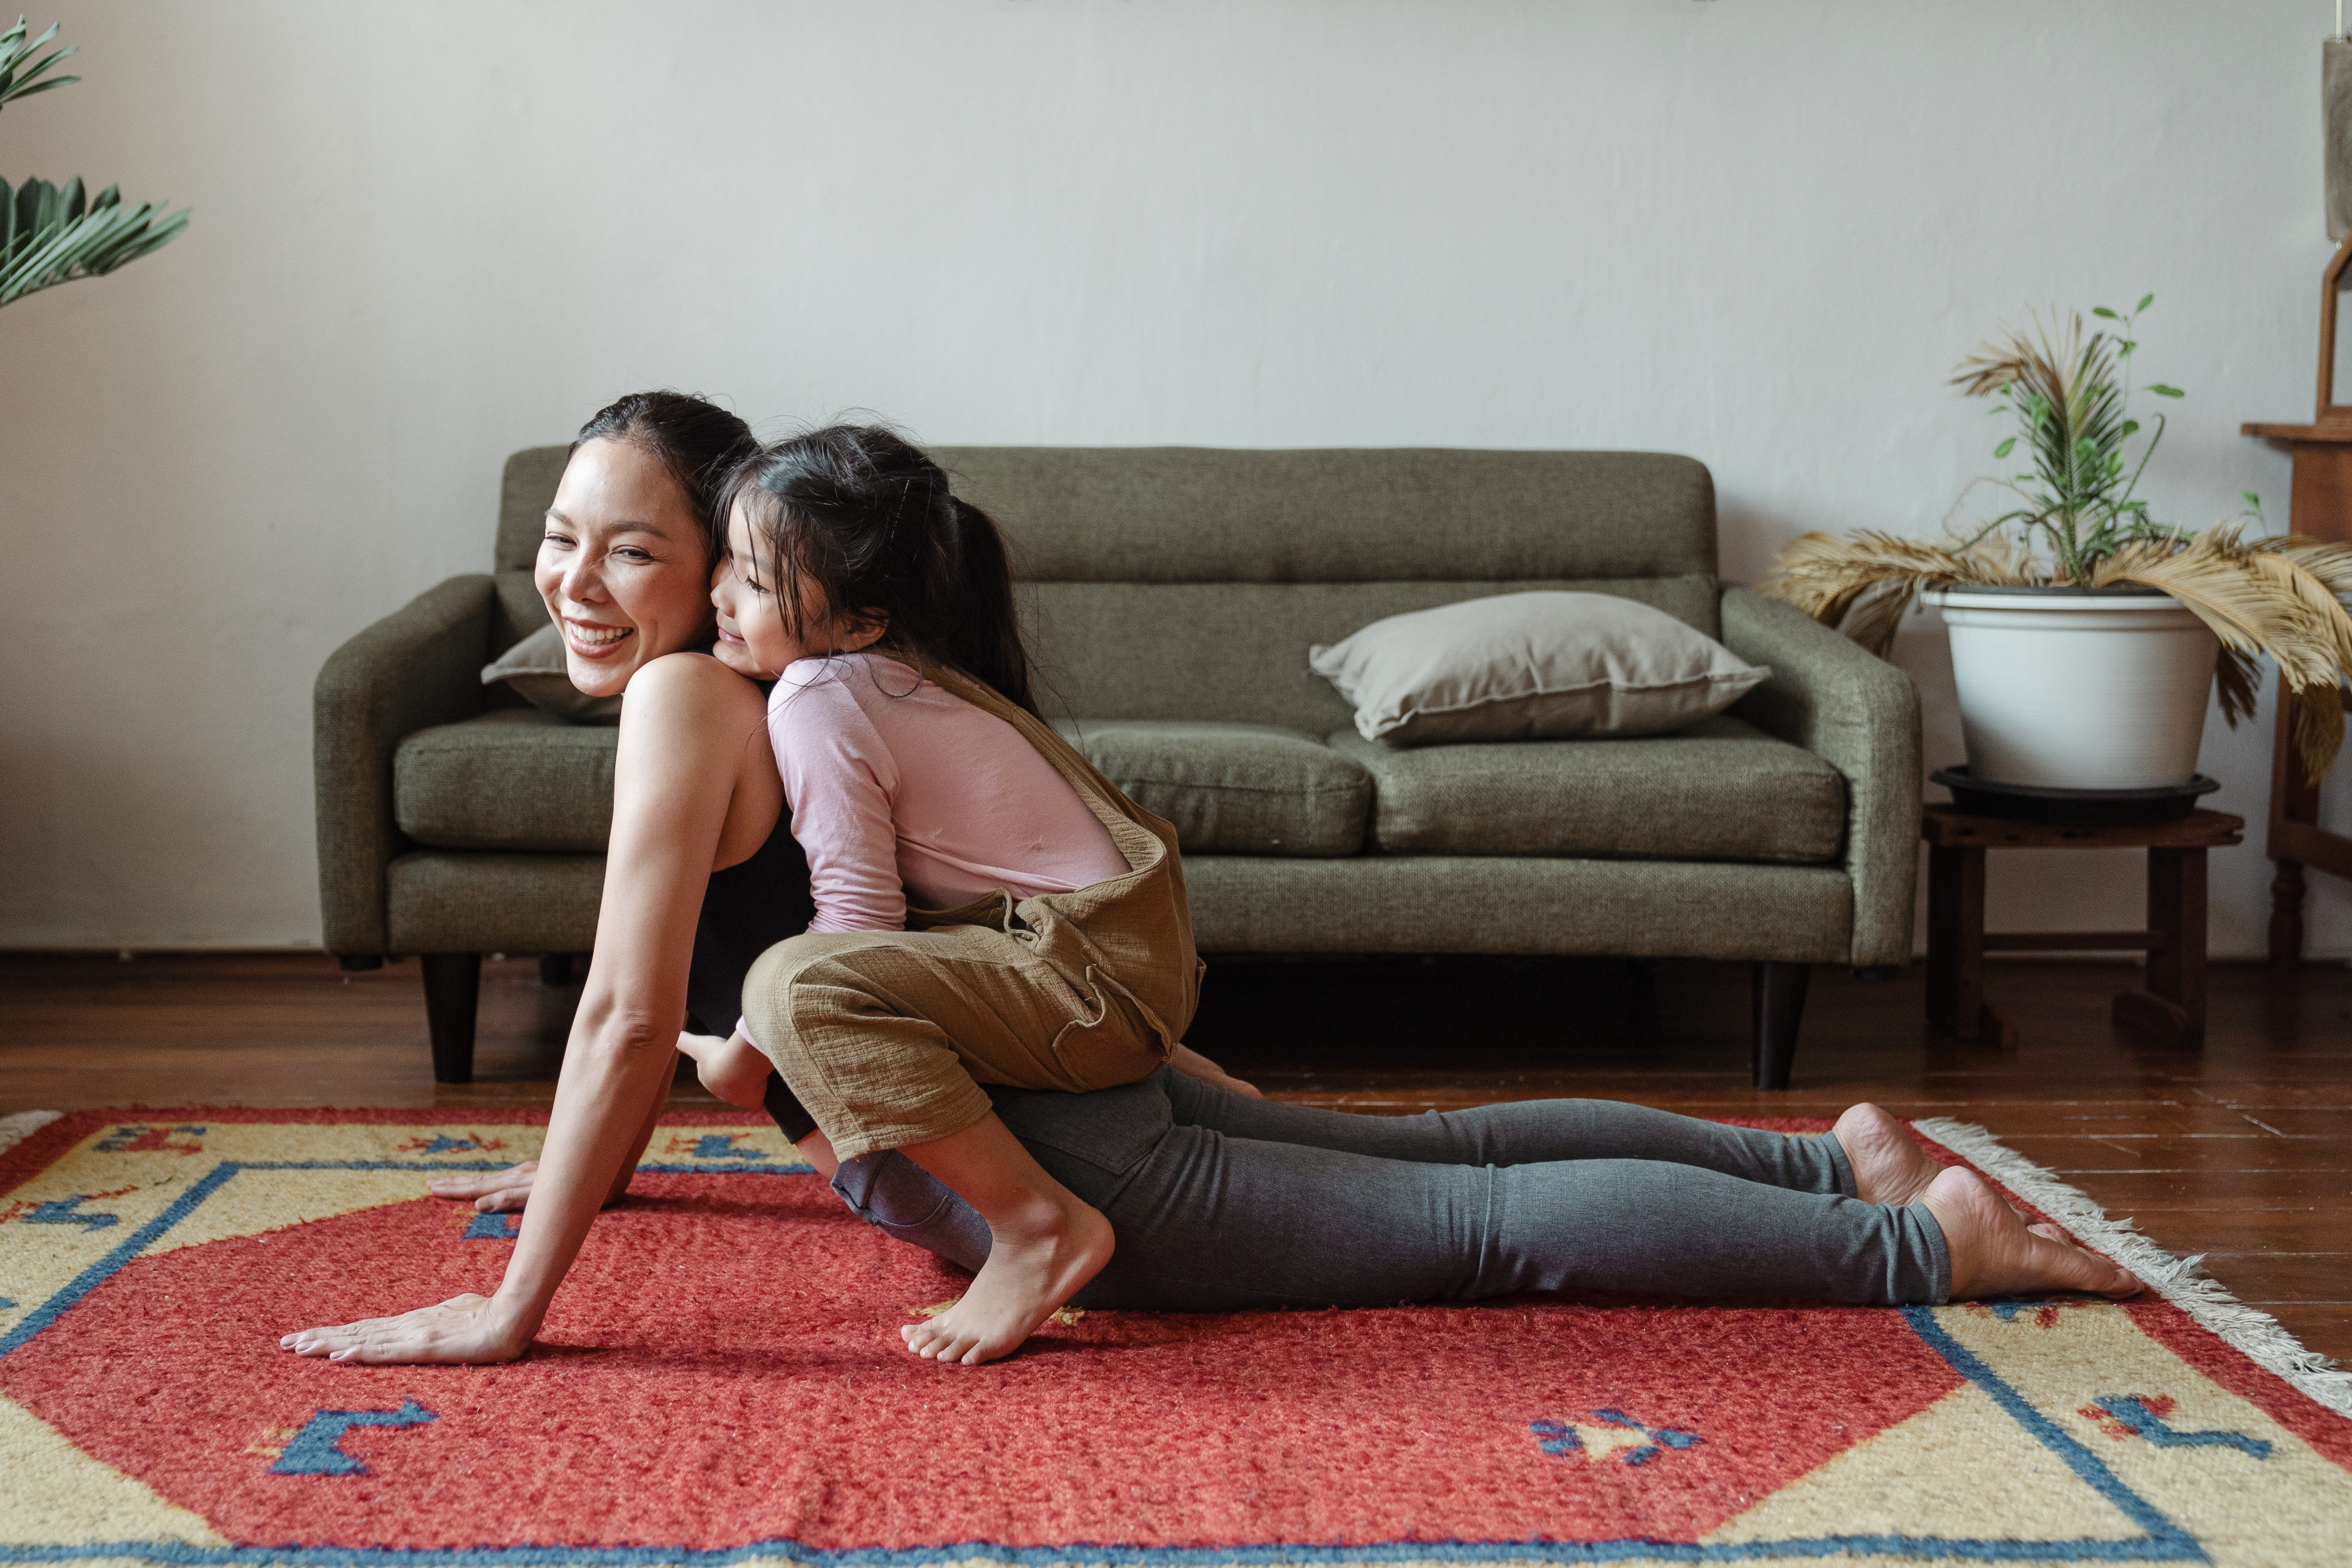 mom practicing yoga, smiling over her shoulder at daughter who is sitting on her back, hugging her from behind